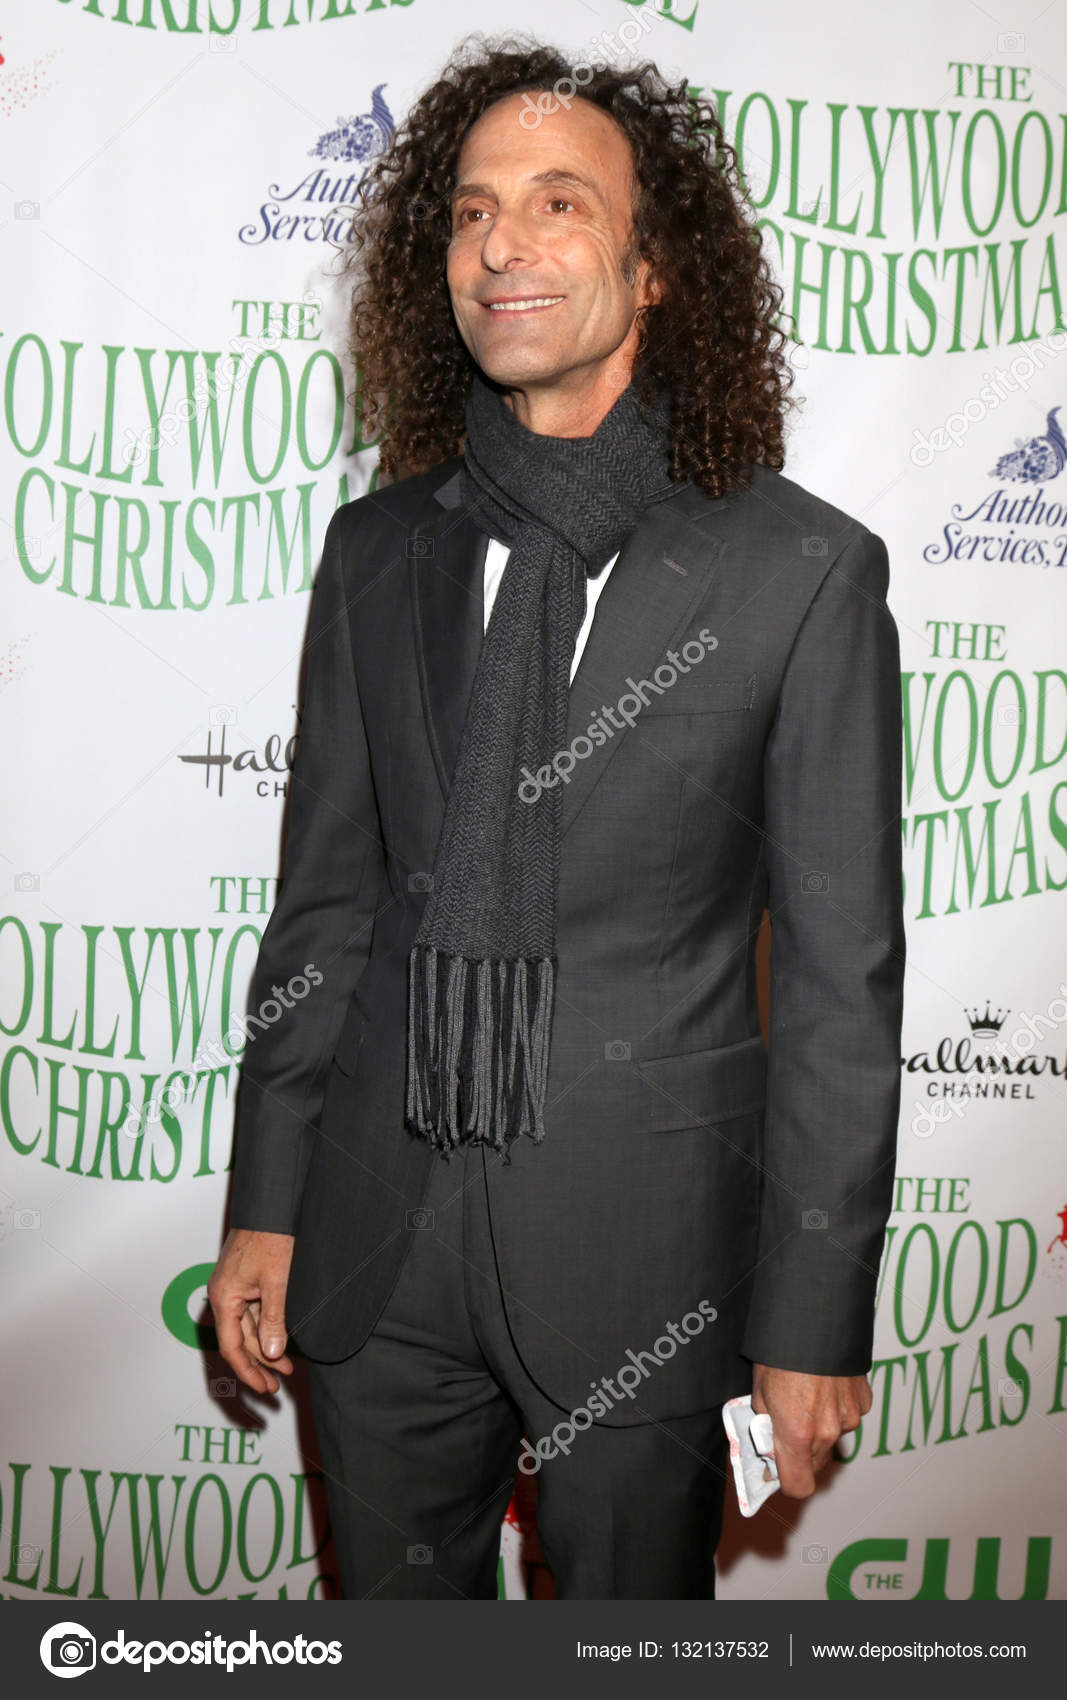 Kenny G Christmas.Kenny G Aka Kenny Gorelick Stock Editorial Photo